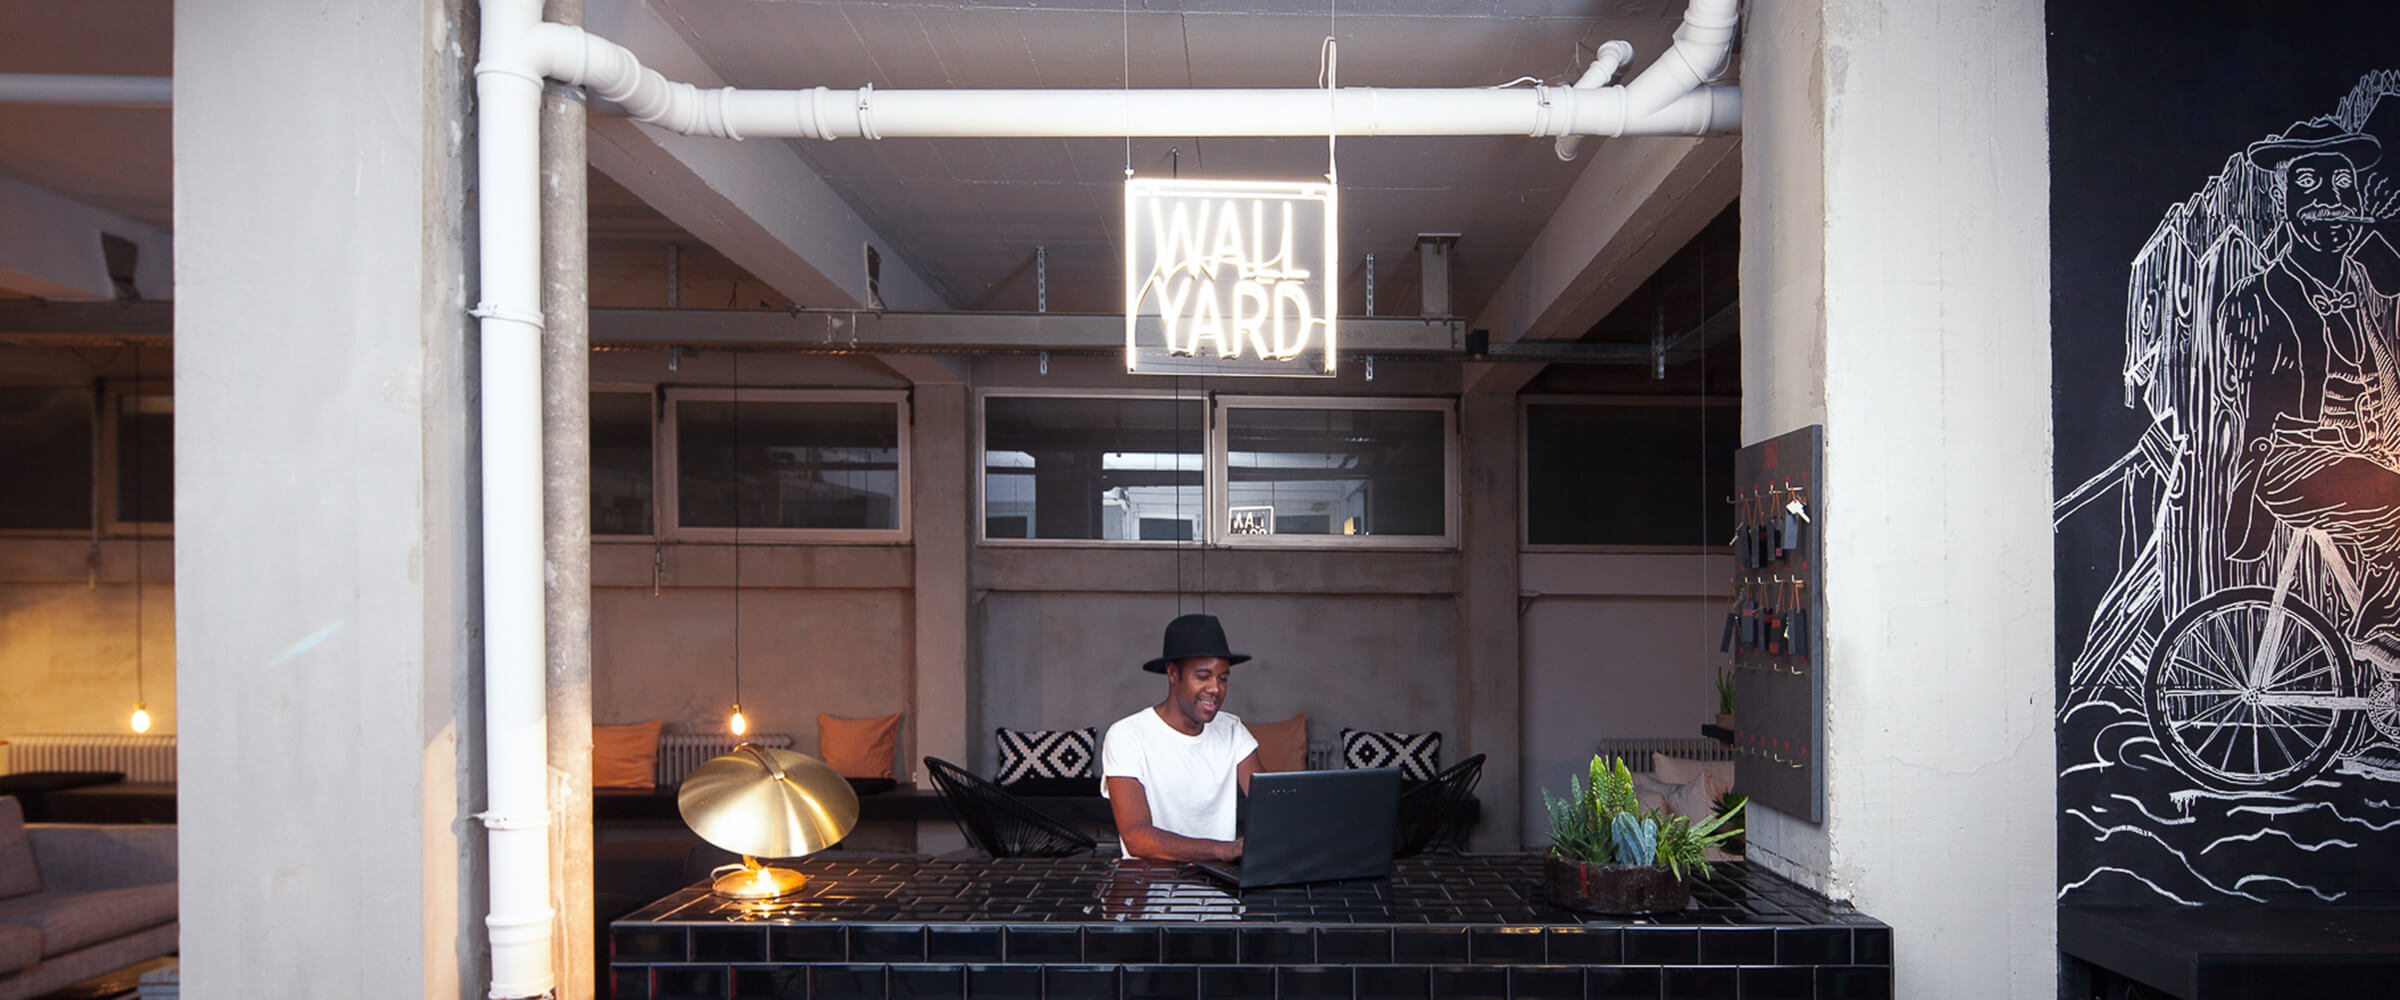 The Wallyard Hostel designed by Moritz Amelung Craft and Design